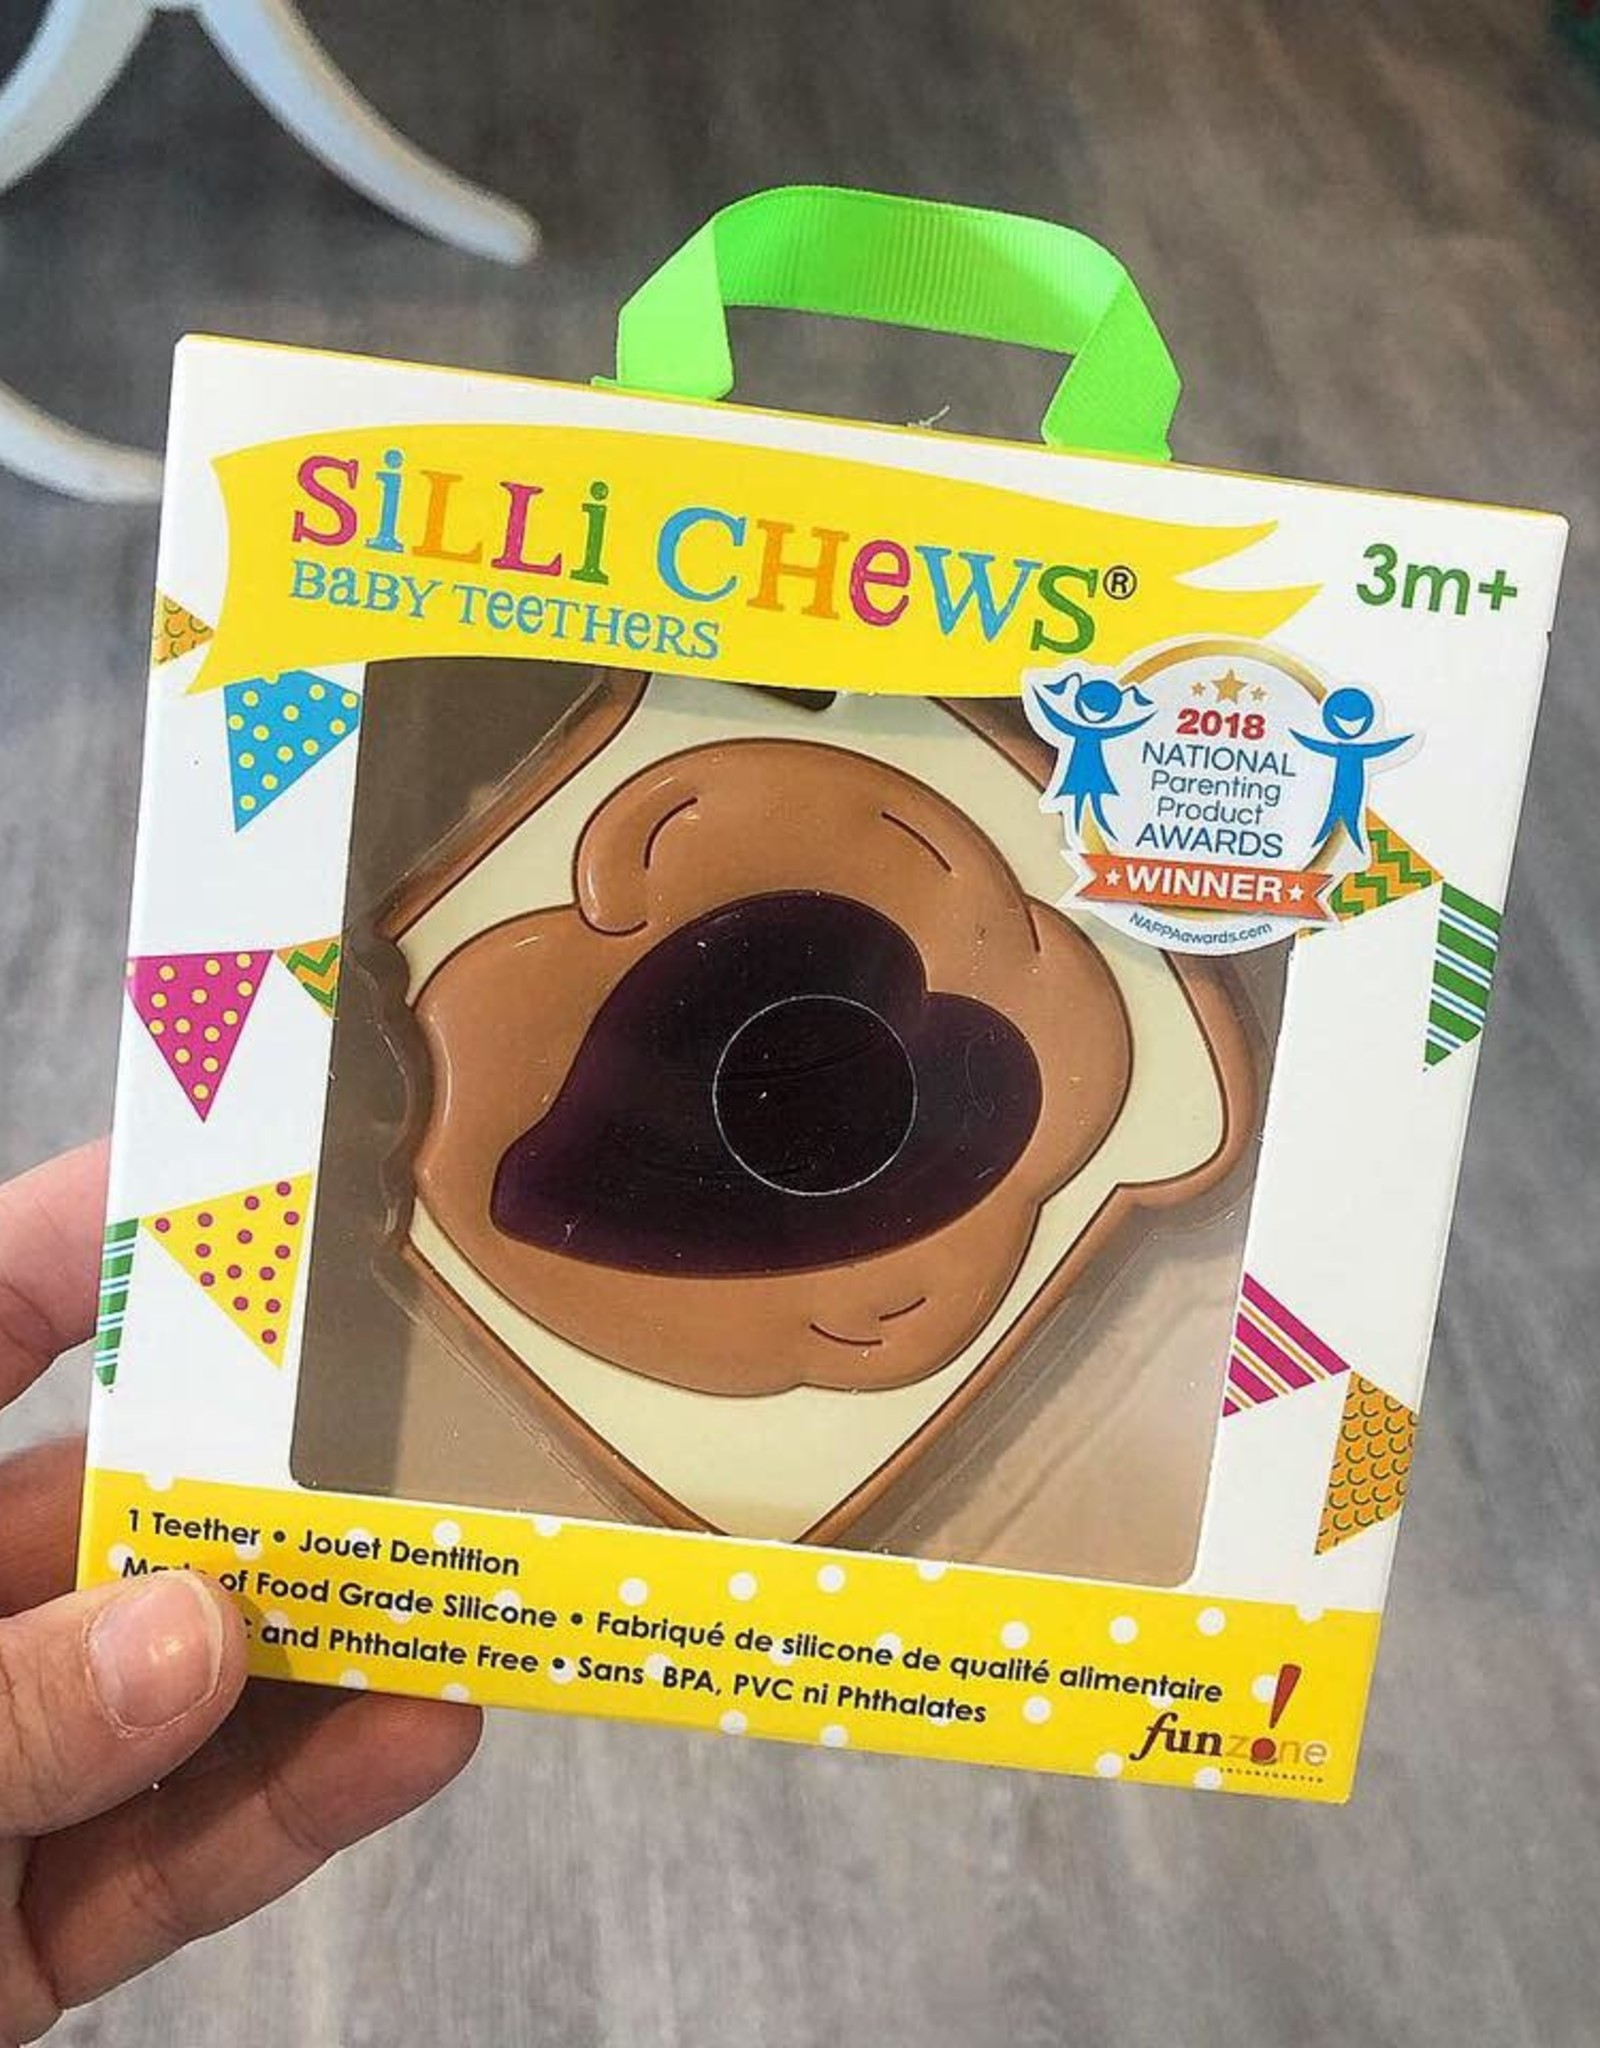 SilliChews Peanut Butter and Jelly Teether